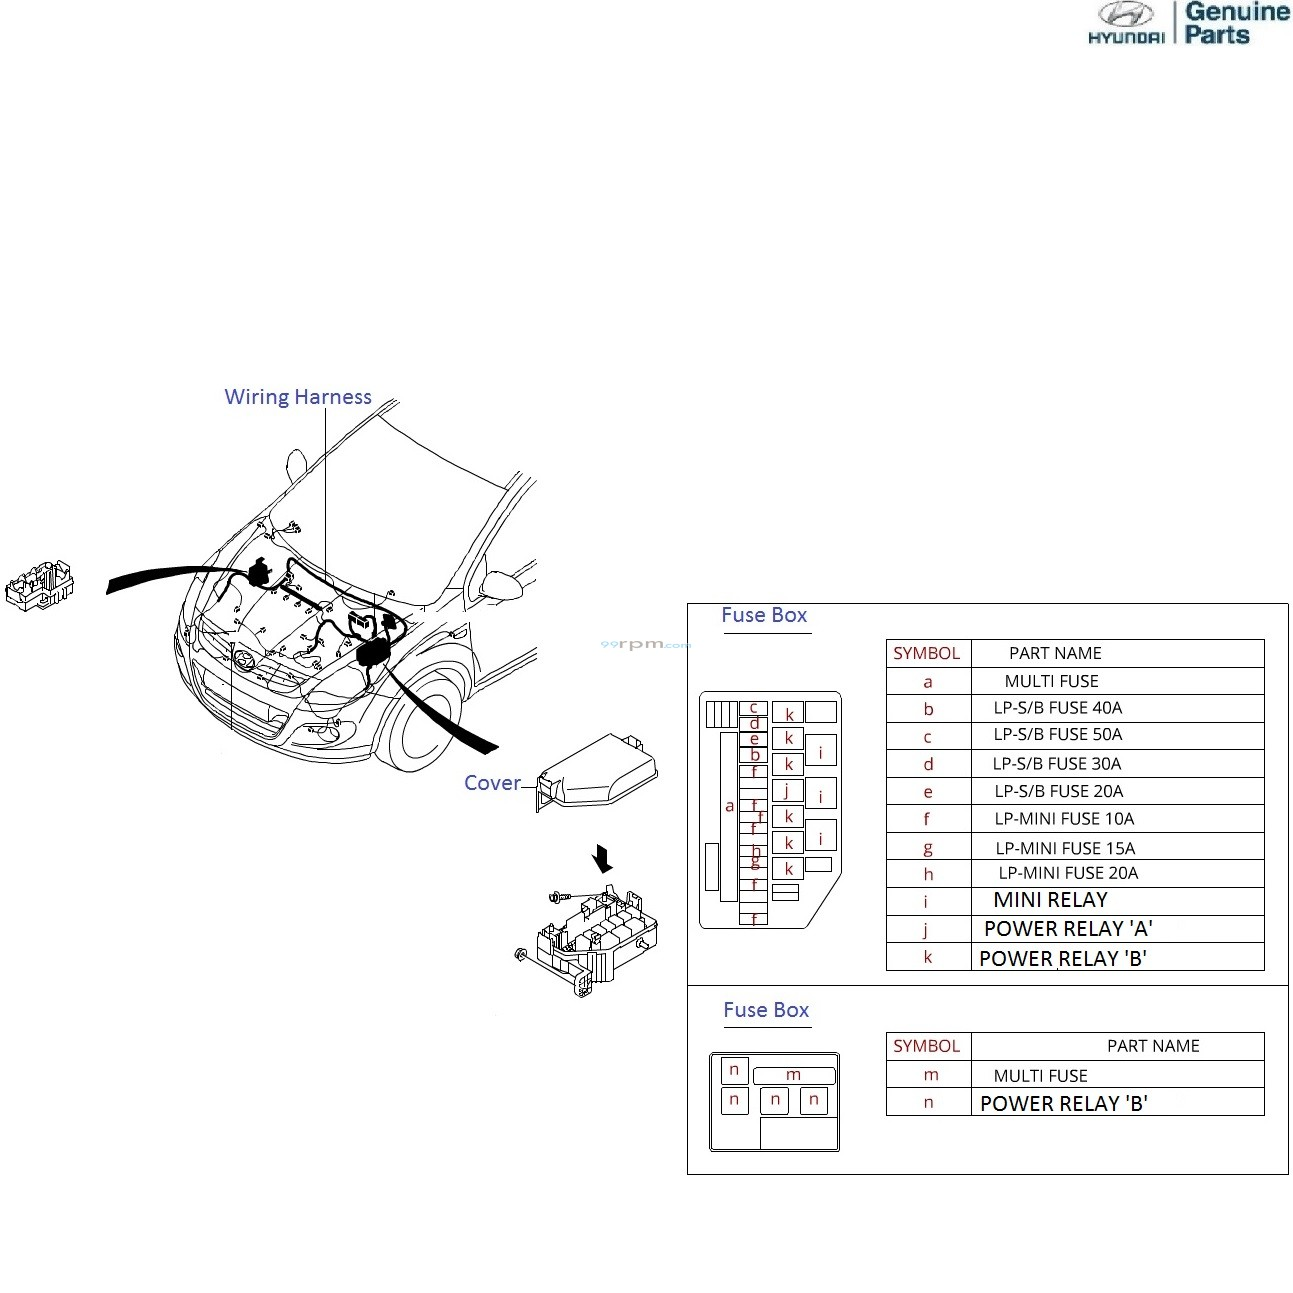 hight resolution of hyundai i20 1 4 crdi front wiring harness